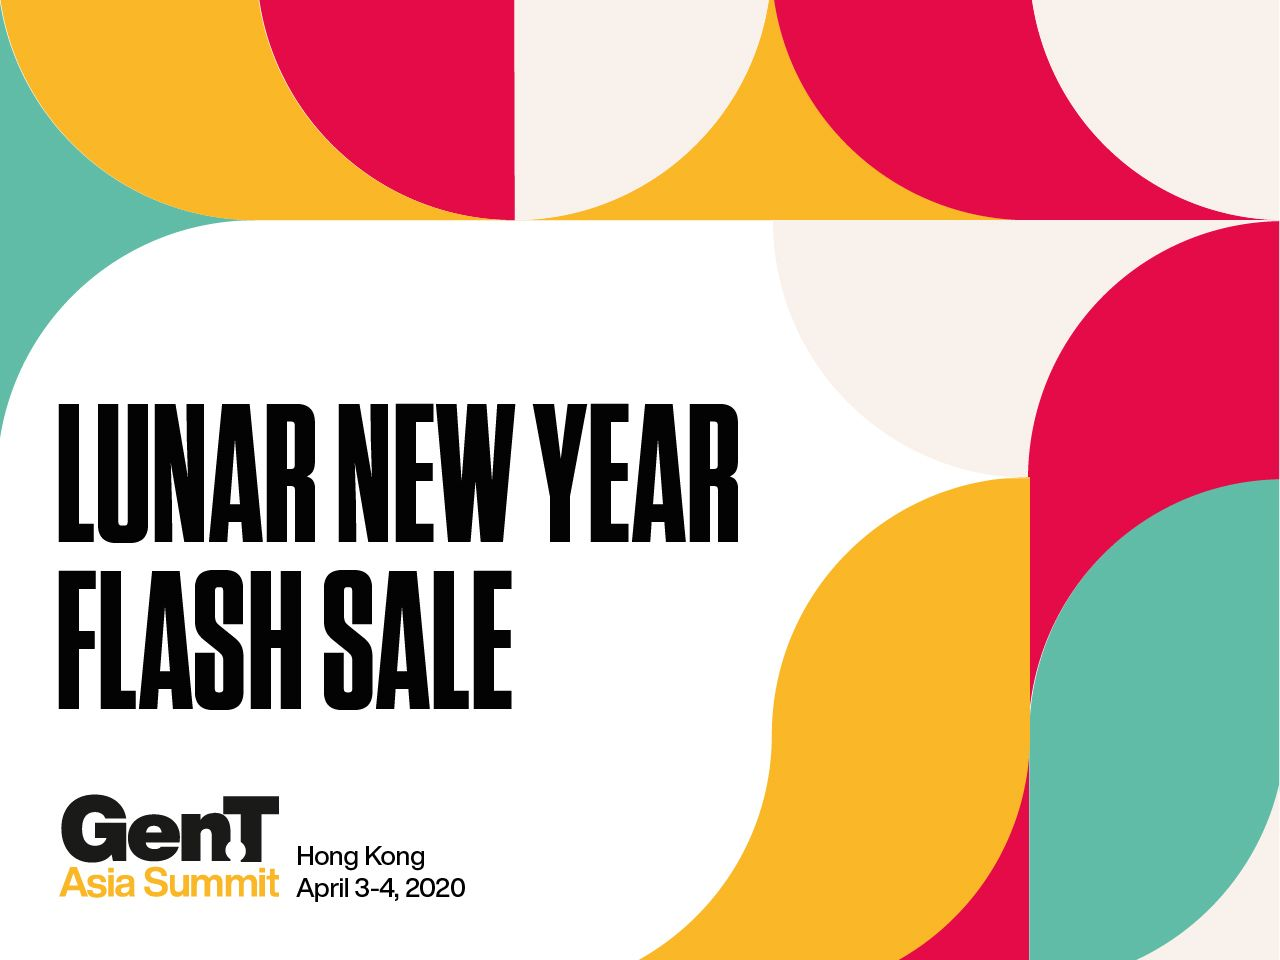 Gen.T Asia Summit: Get Tickets at a Preferential Rate in Our Lunar New Year Flash Sale